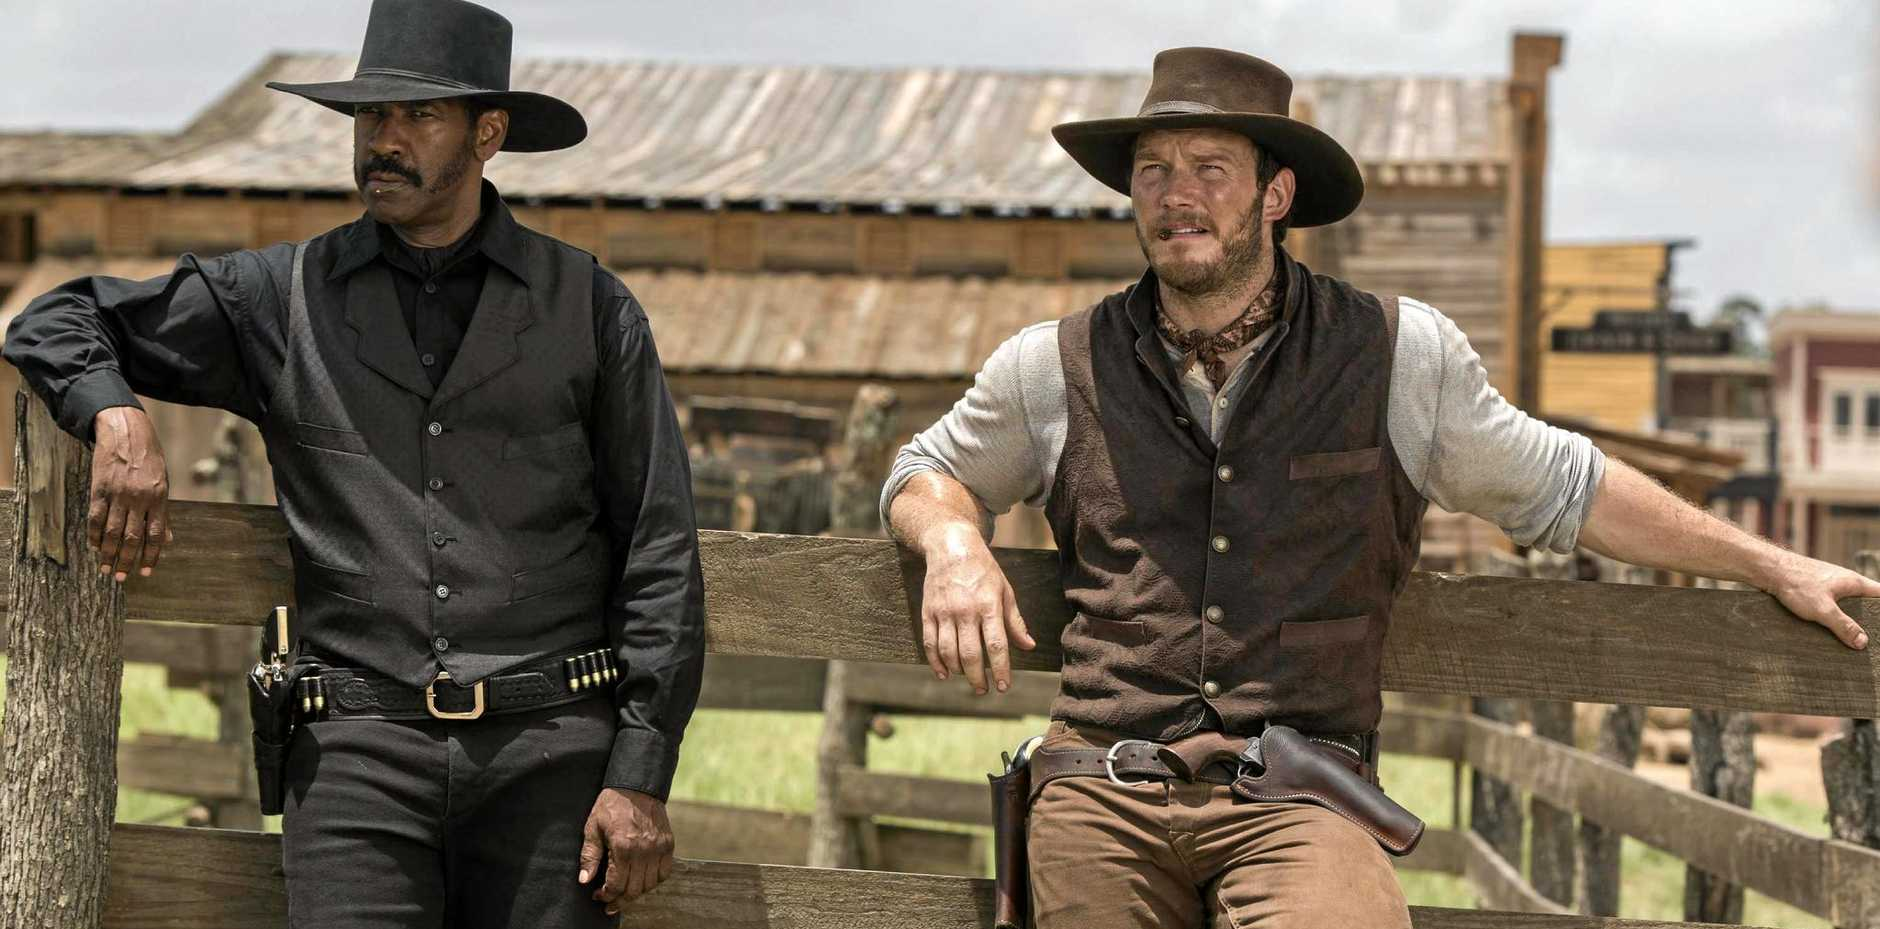 WILD WEST: Denzel Washington and Chris Pratt in a scene from the movie.